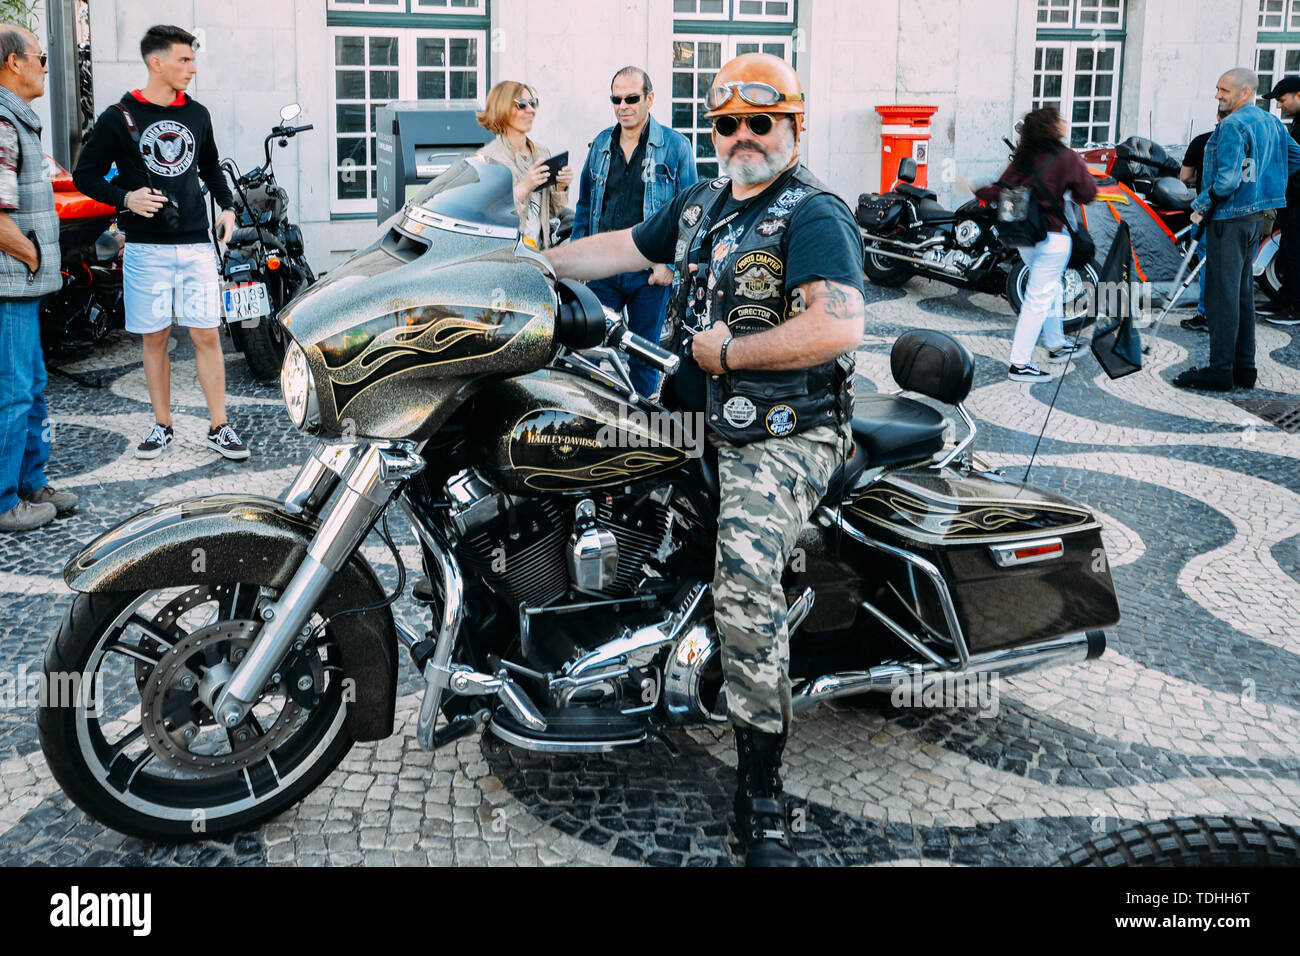 Cascais, Portugal - June 16, 2019: Cascais hosts the 28th Annual European Harley-Davidson H.O.G. Rally from 13-16 June, 2019. Older man poses on his H - Stock Image